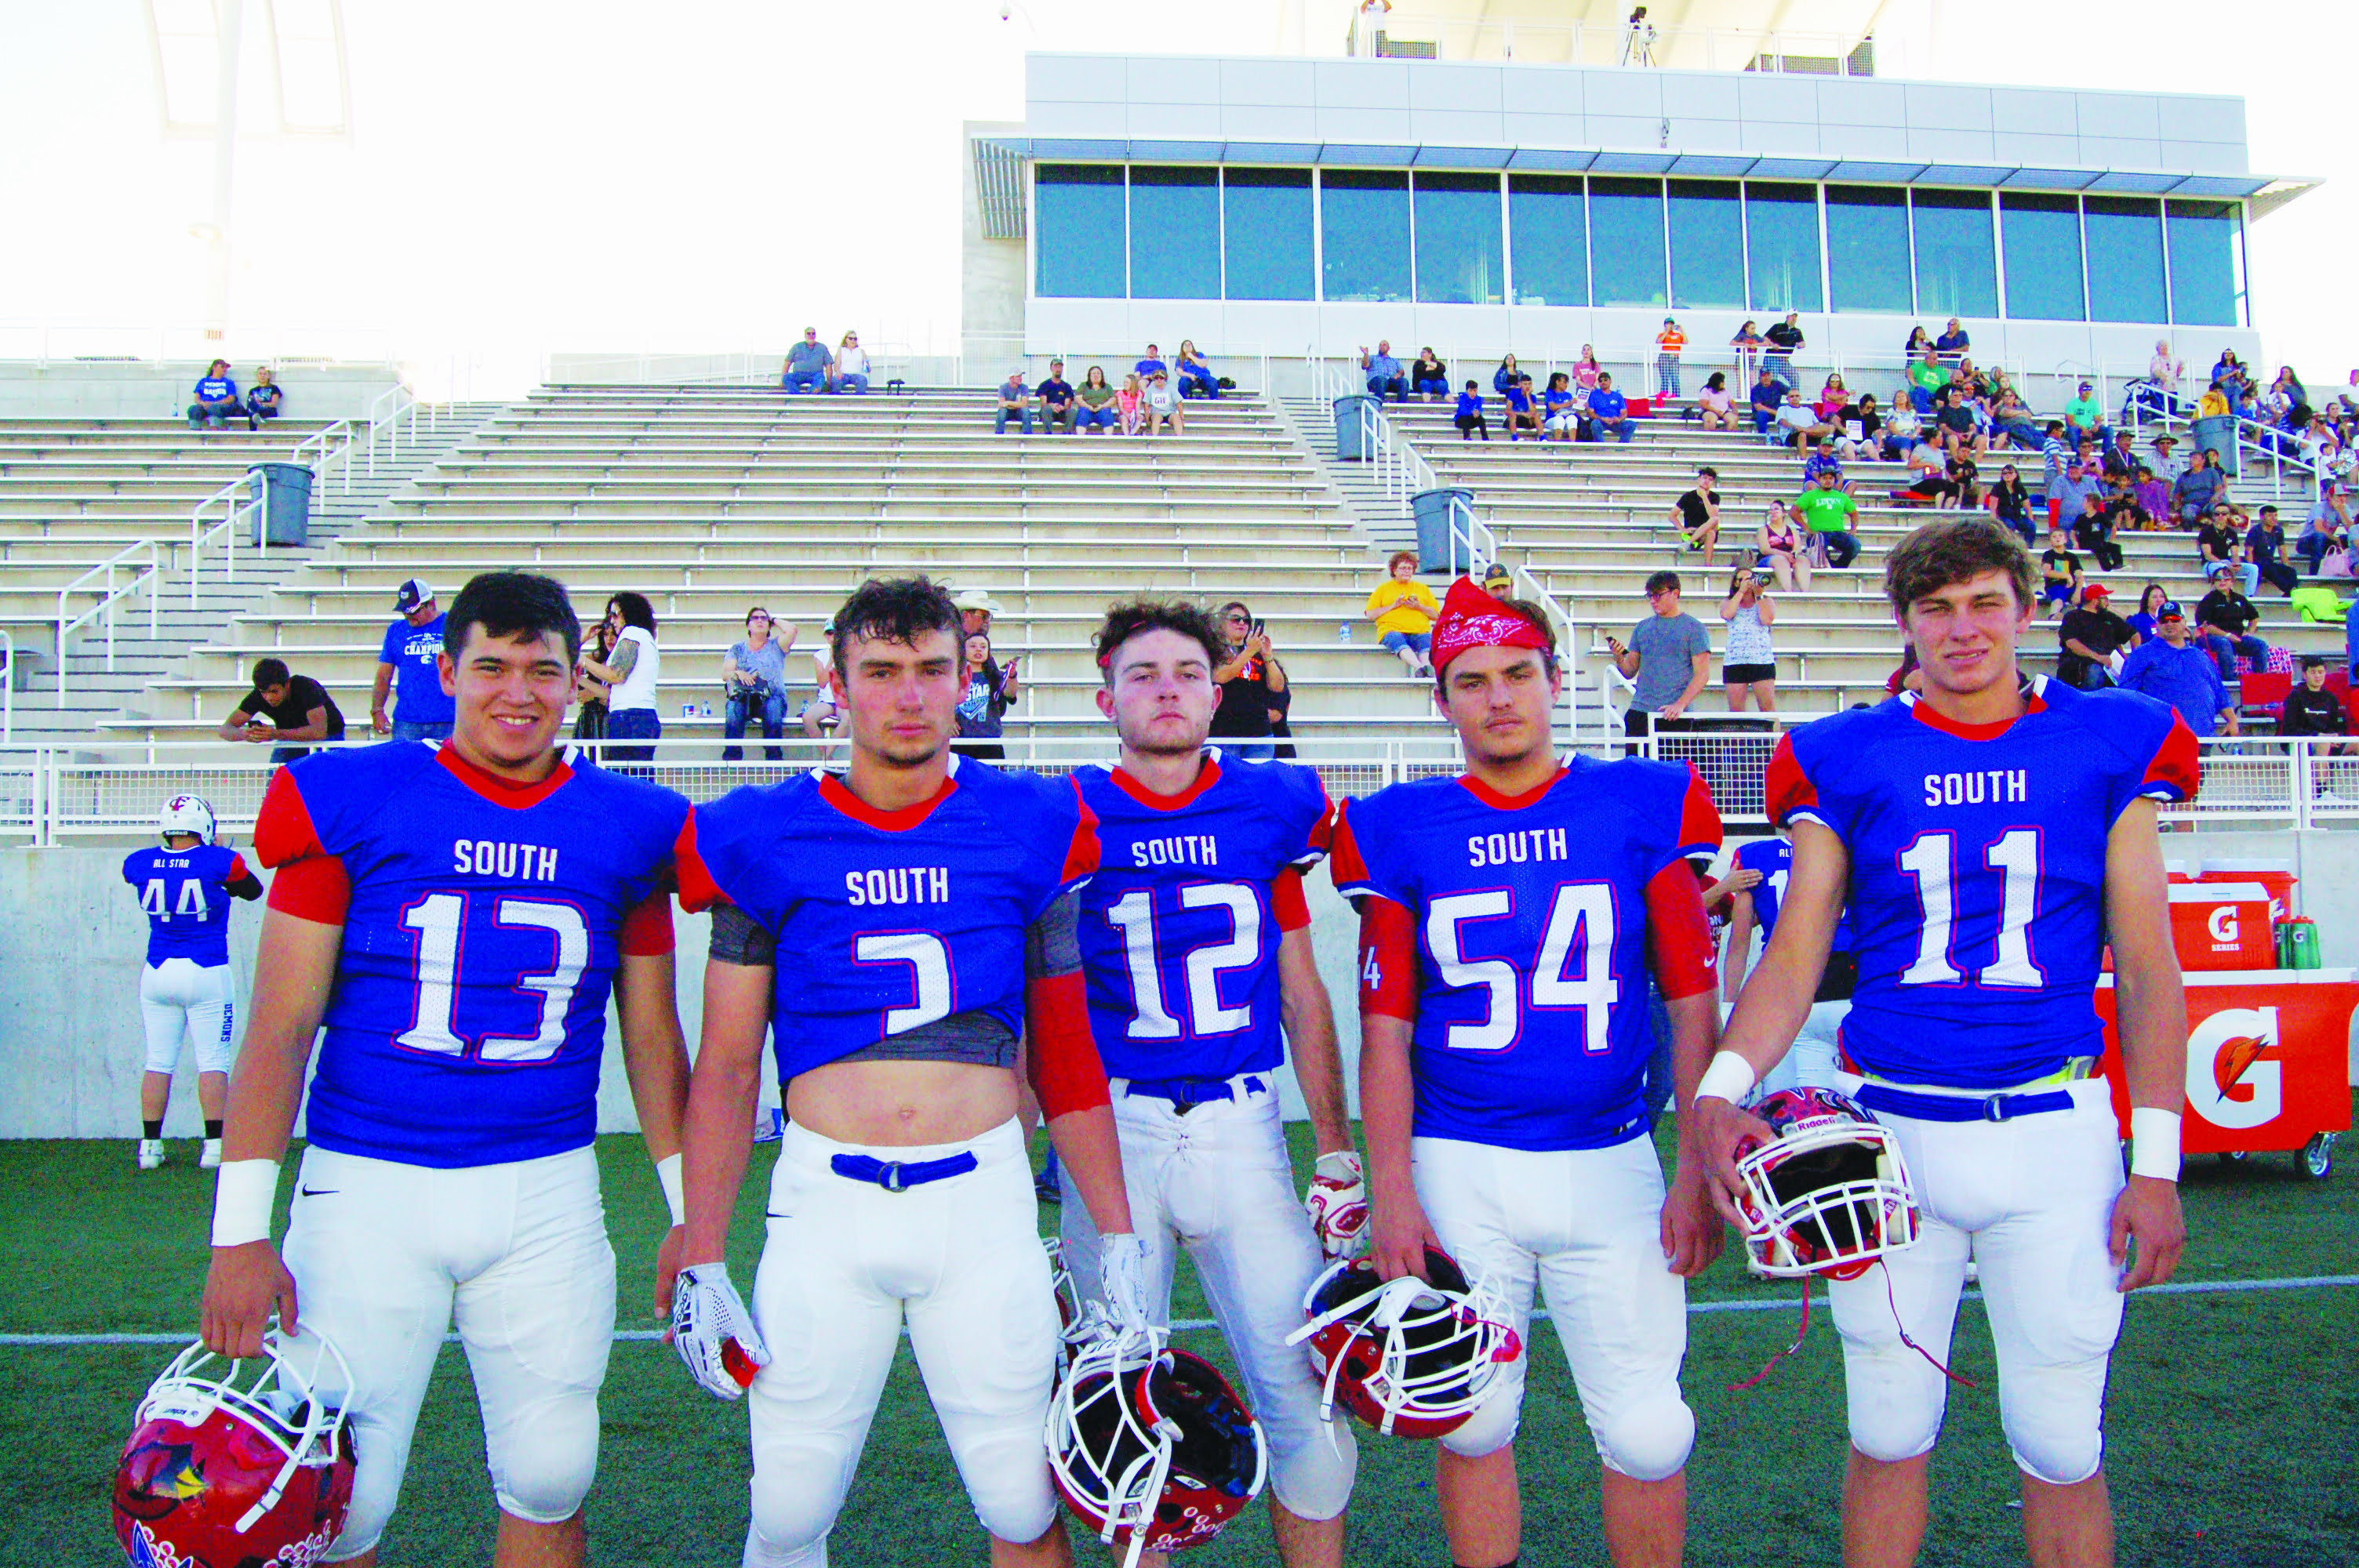 Annual North/South All-Star games: 'the cherry on top' for recently graduated high school athletes